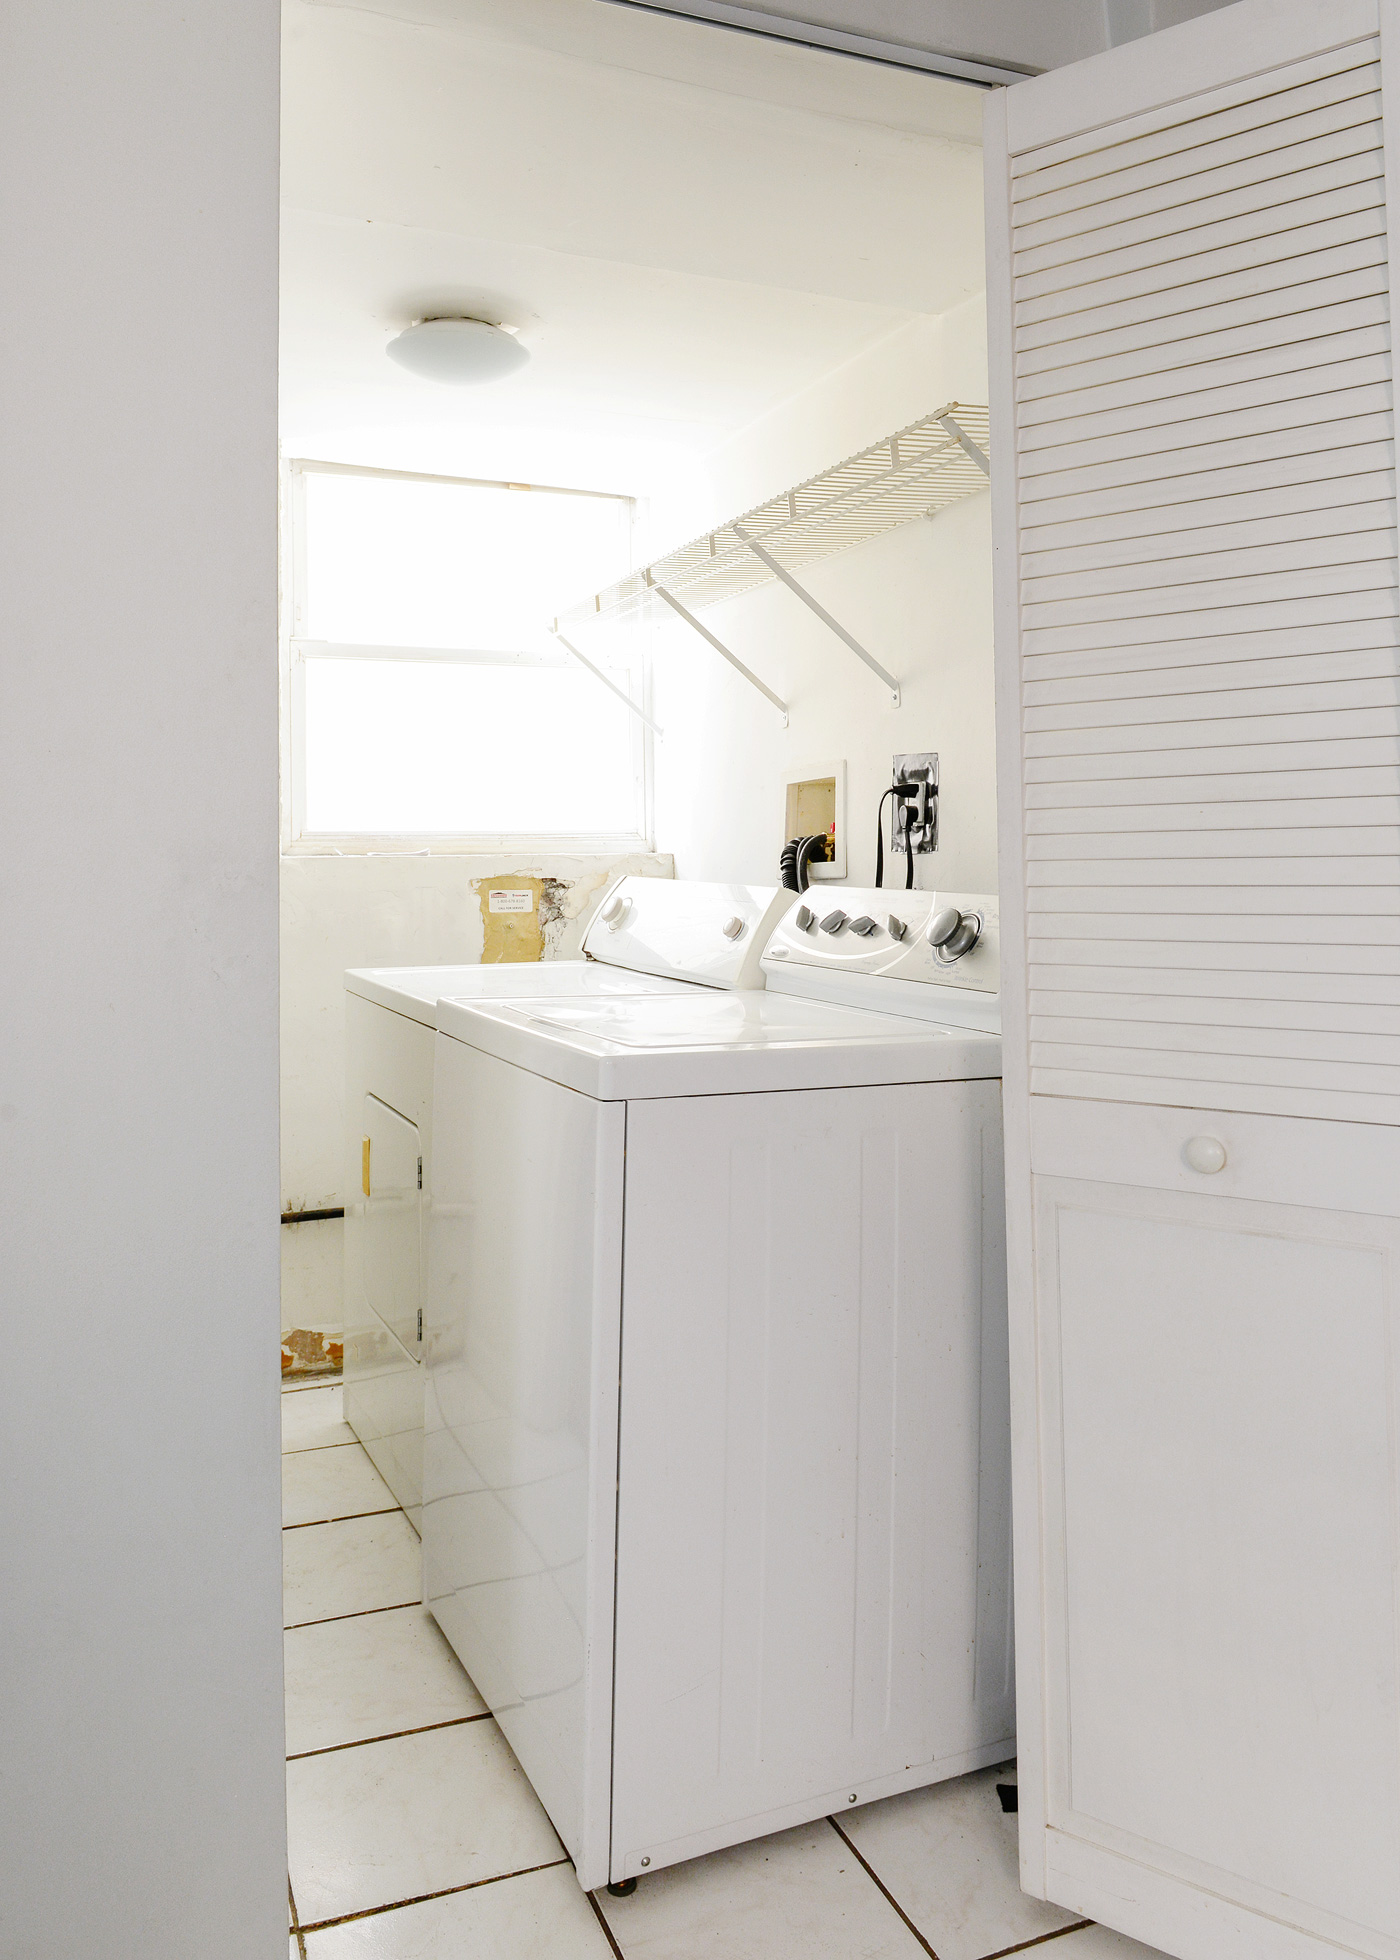 How We Added Beadboard to the Laundry Room! | Yellow Brick Home